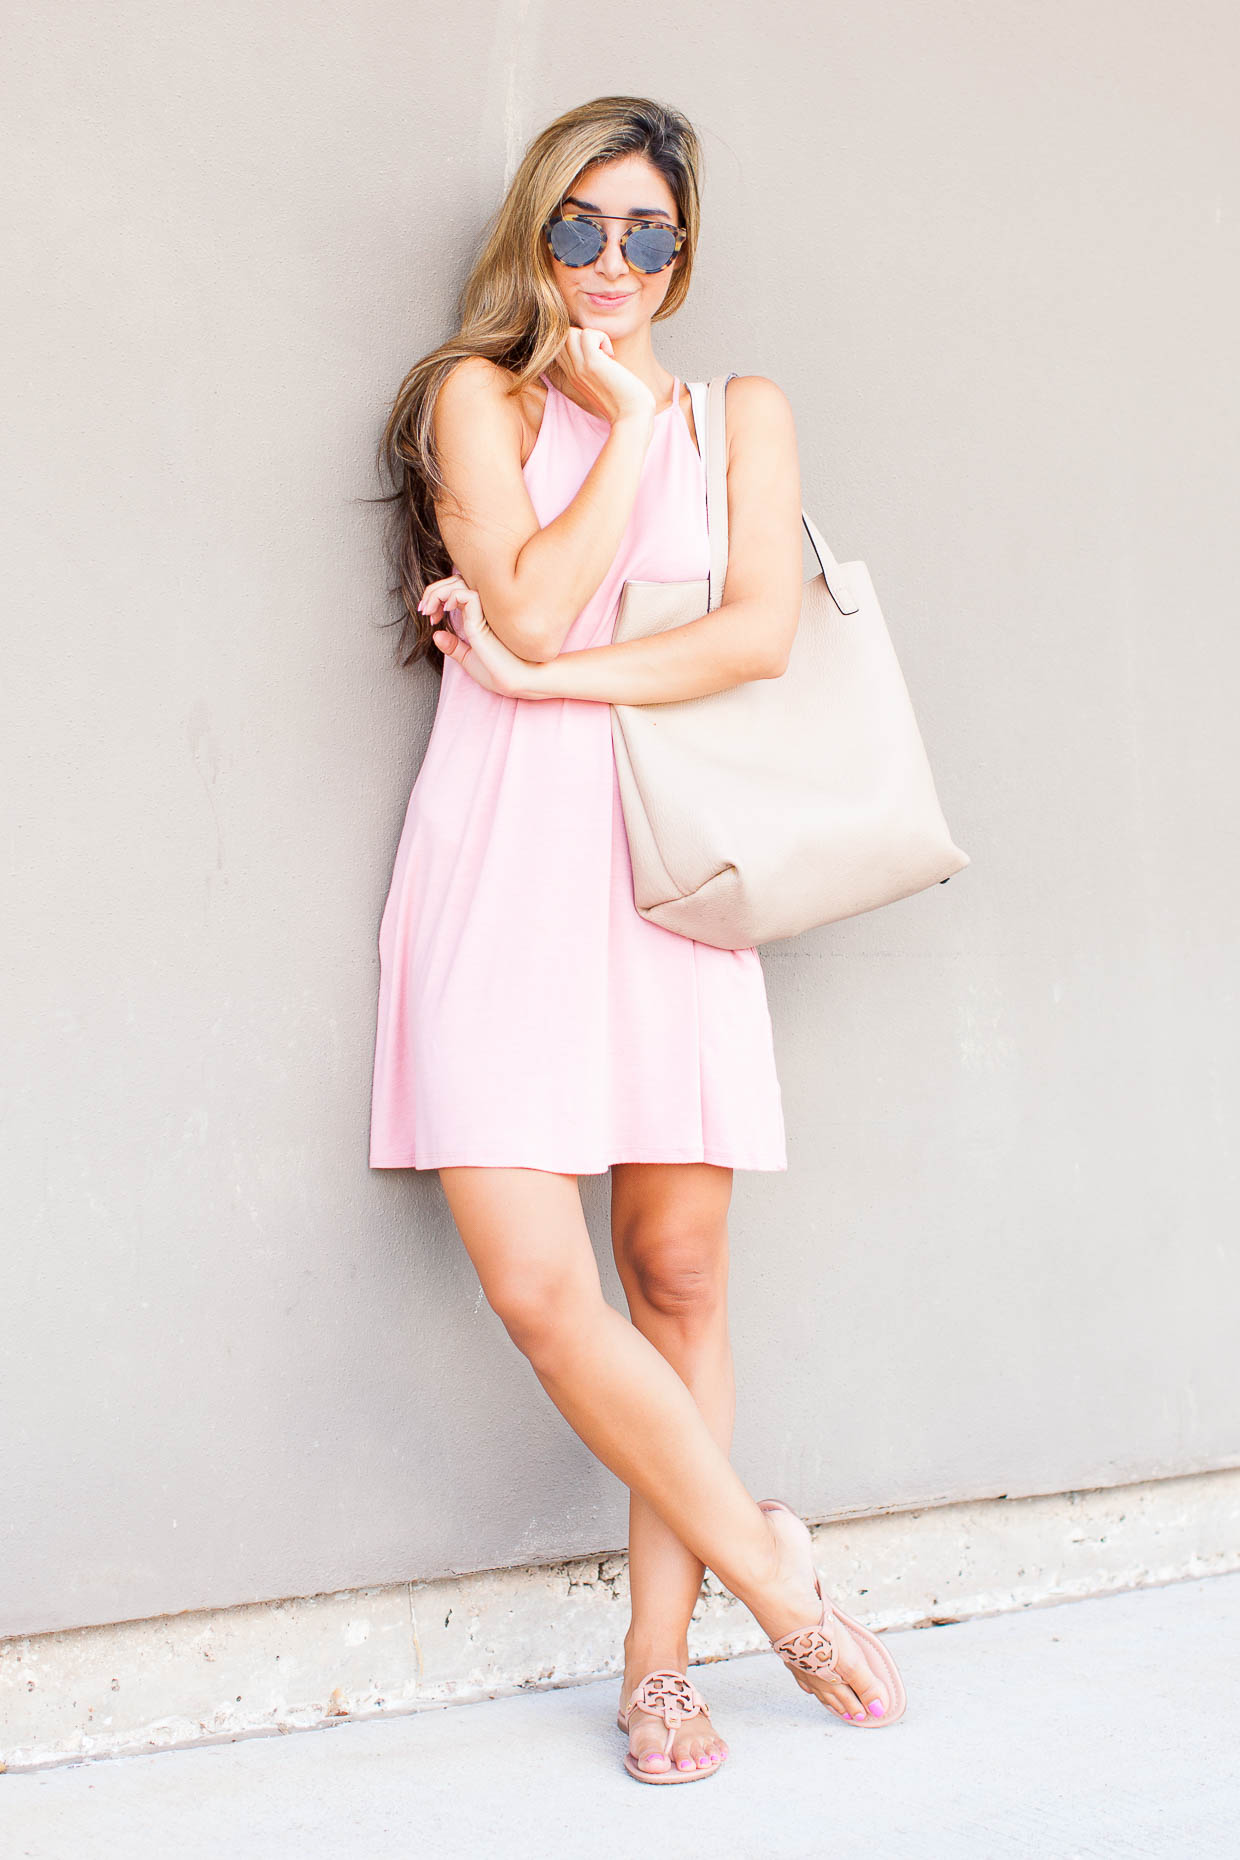 Fashion Blogger The Darling Detail is wearing a Socialite High Neck Knit Swing Dress with Tory Burch Miller Flip Flops and Westward Leaning Flower 1 Sunglasses, holding a Street Level Reversible Faux Leather Tote.